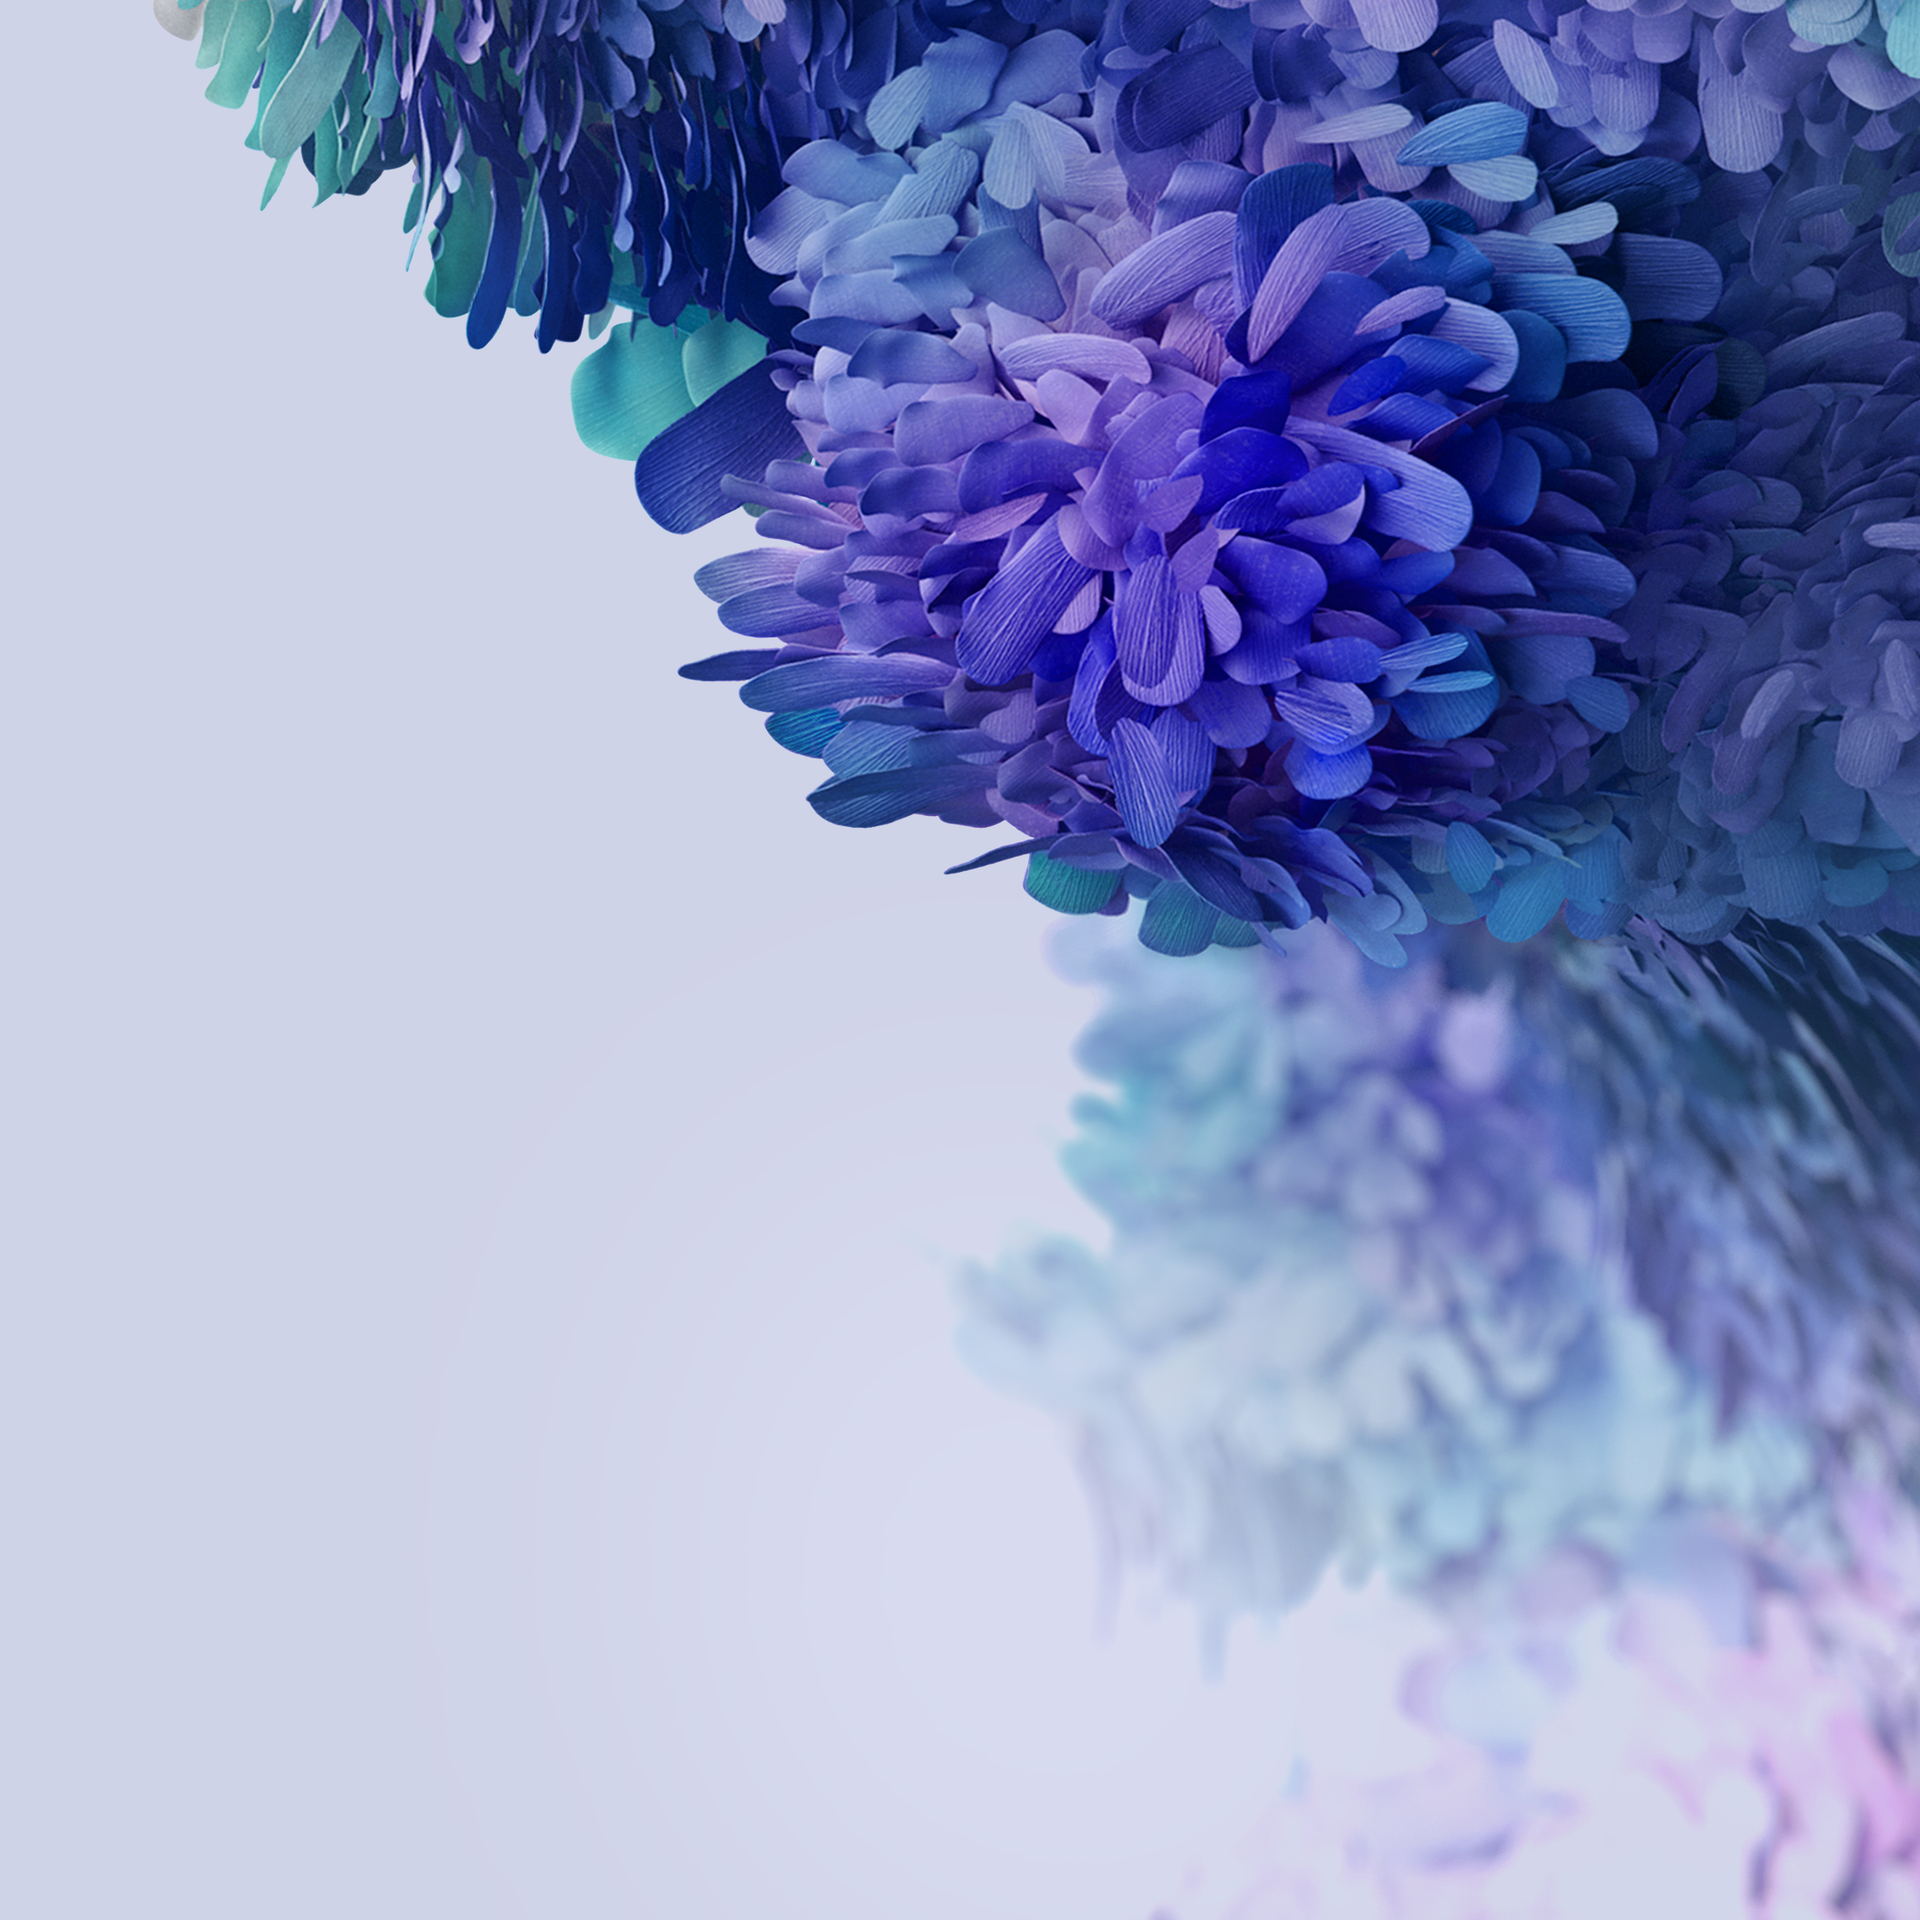 Download The Samsung Galaxy S20 Fan Edition Wallpapers Android Authority